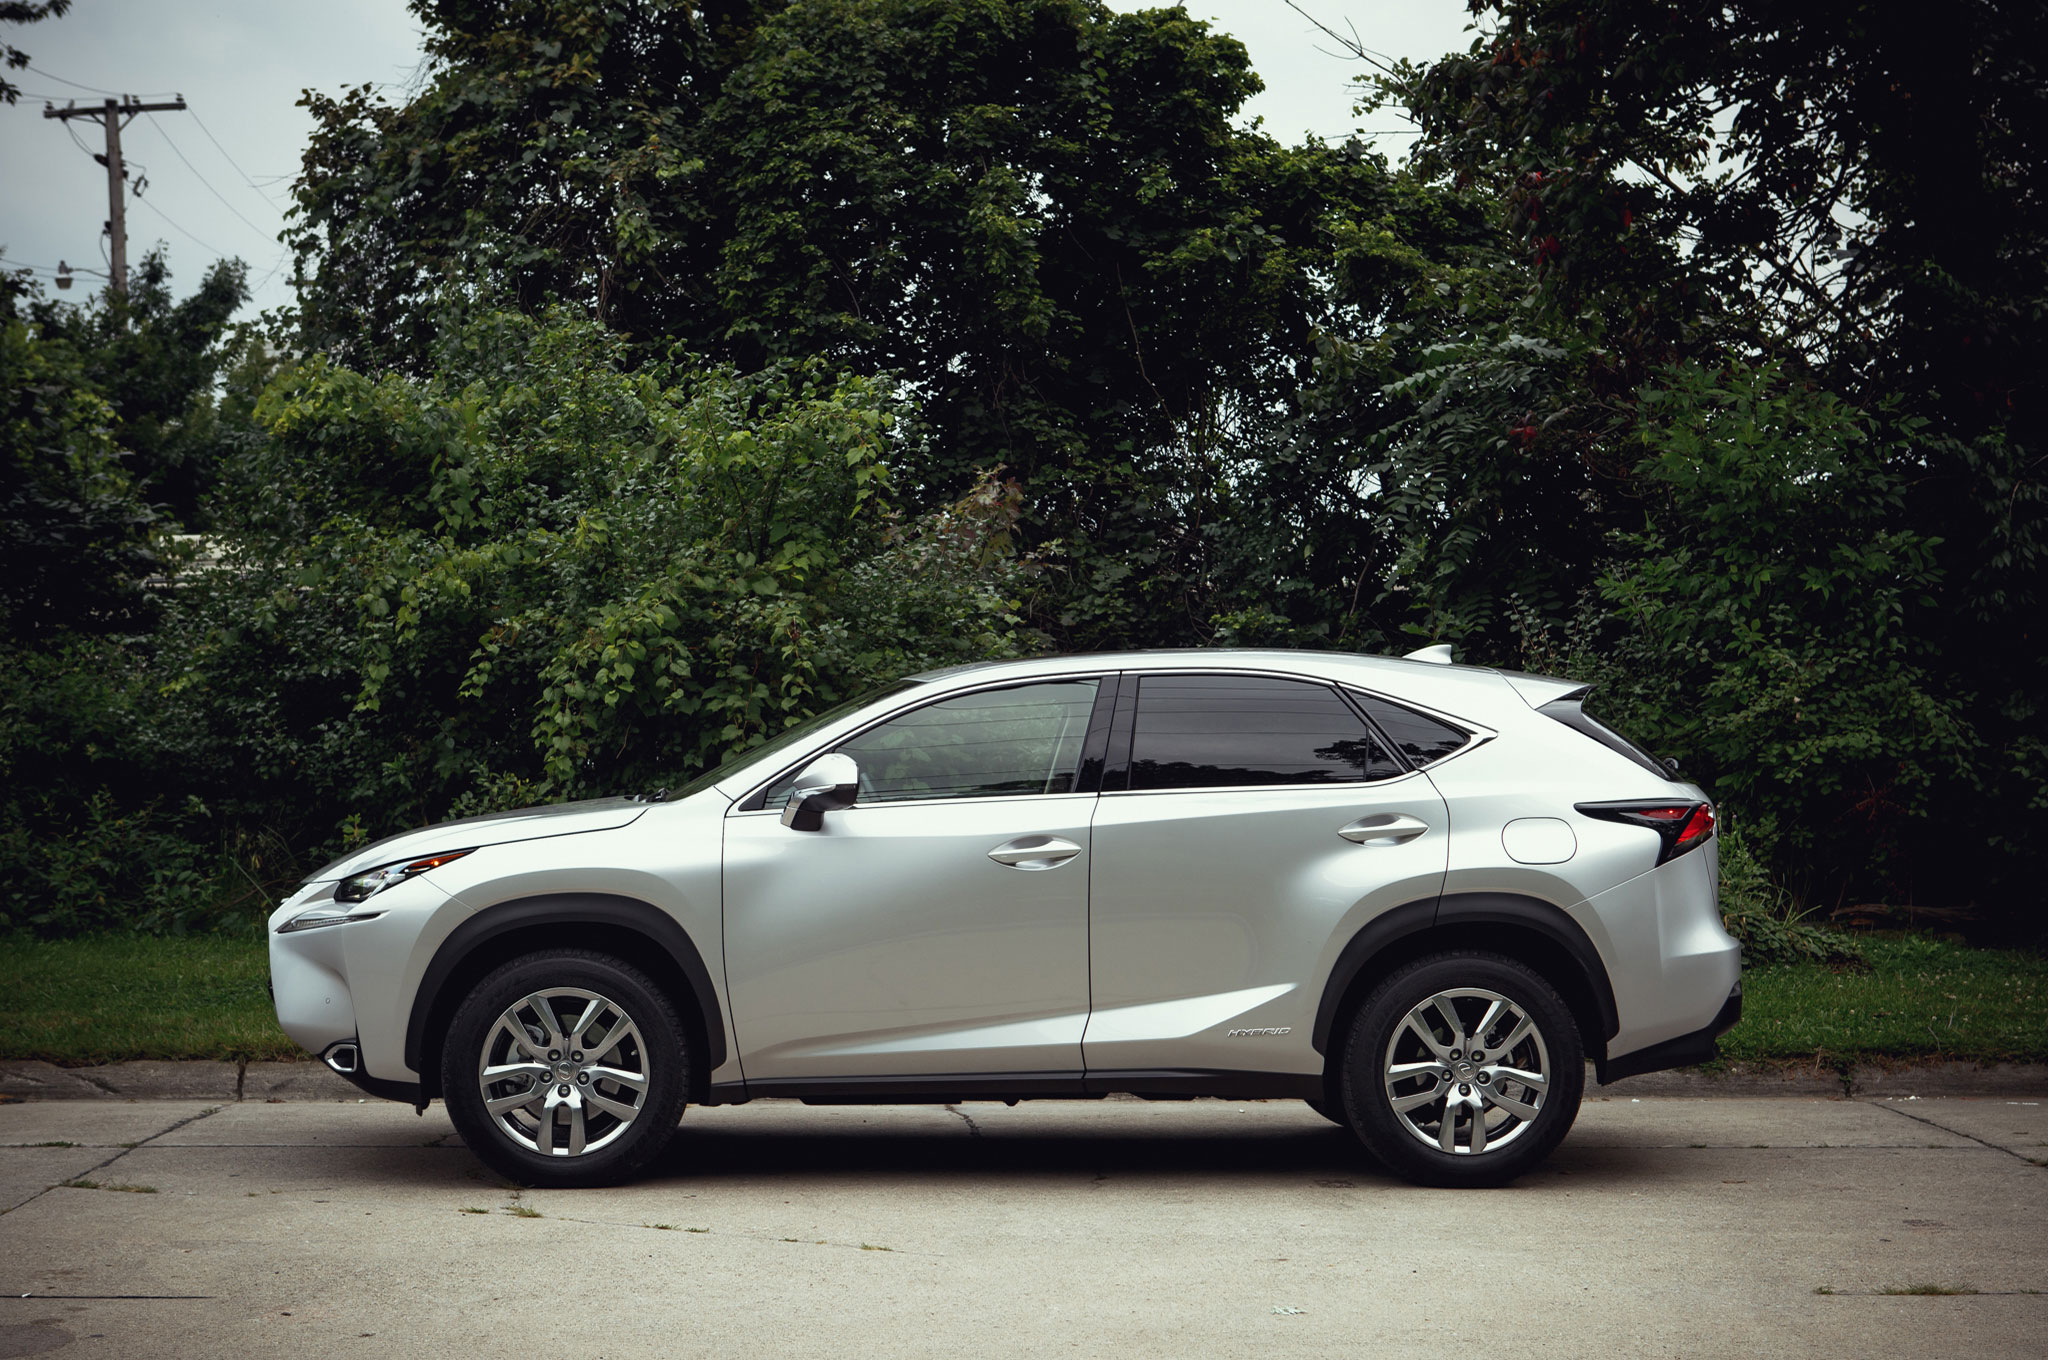 Lexus Nx Hybrid >> 2015 Lexus NX 300h: Around the Block